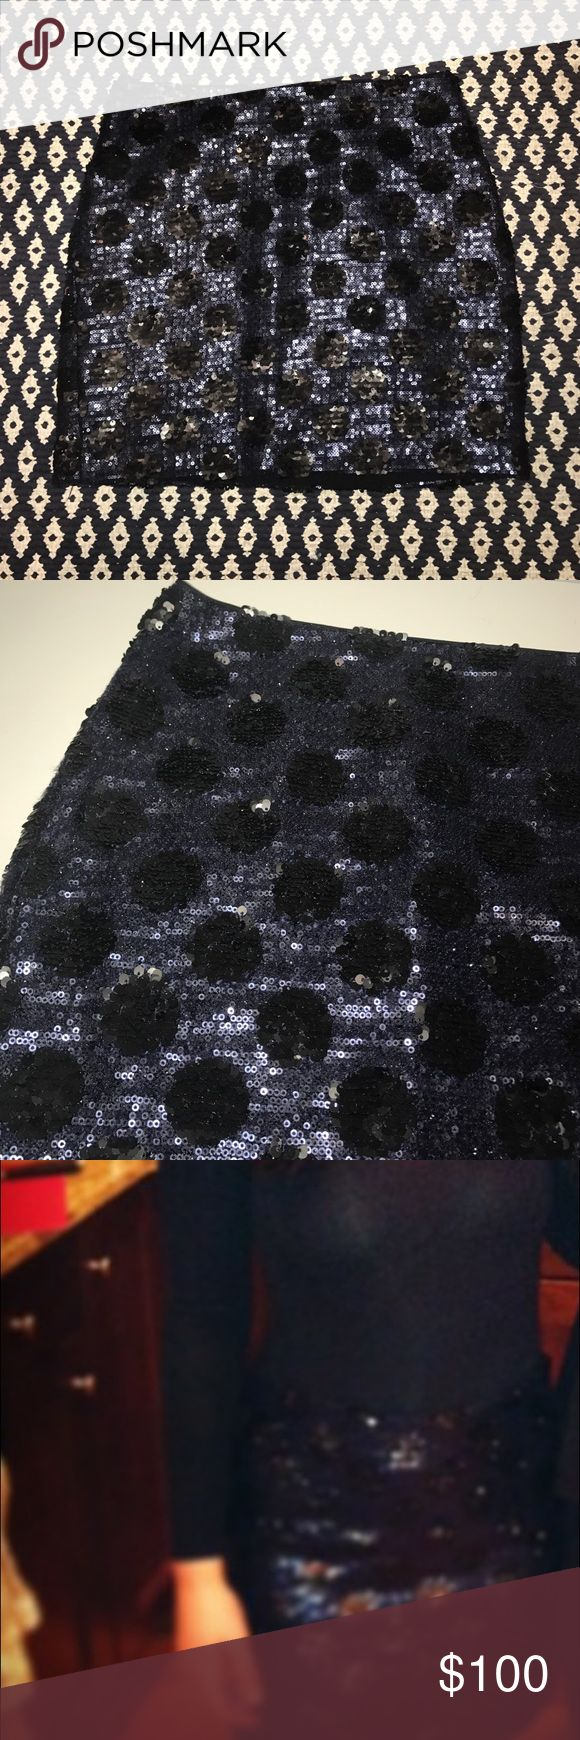 Navy and black sequin mini skirt Worn once! Body con mini skirt. Black on navy polka dot pattern. All sequins intact!! Looks like new! Madewell Skirts Mini